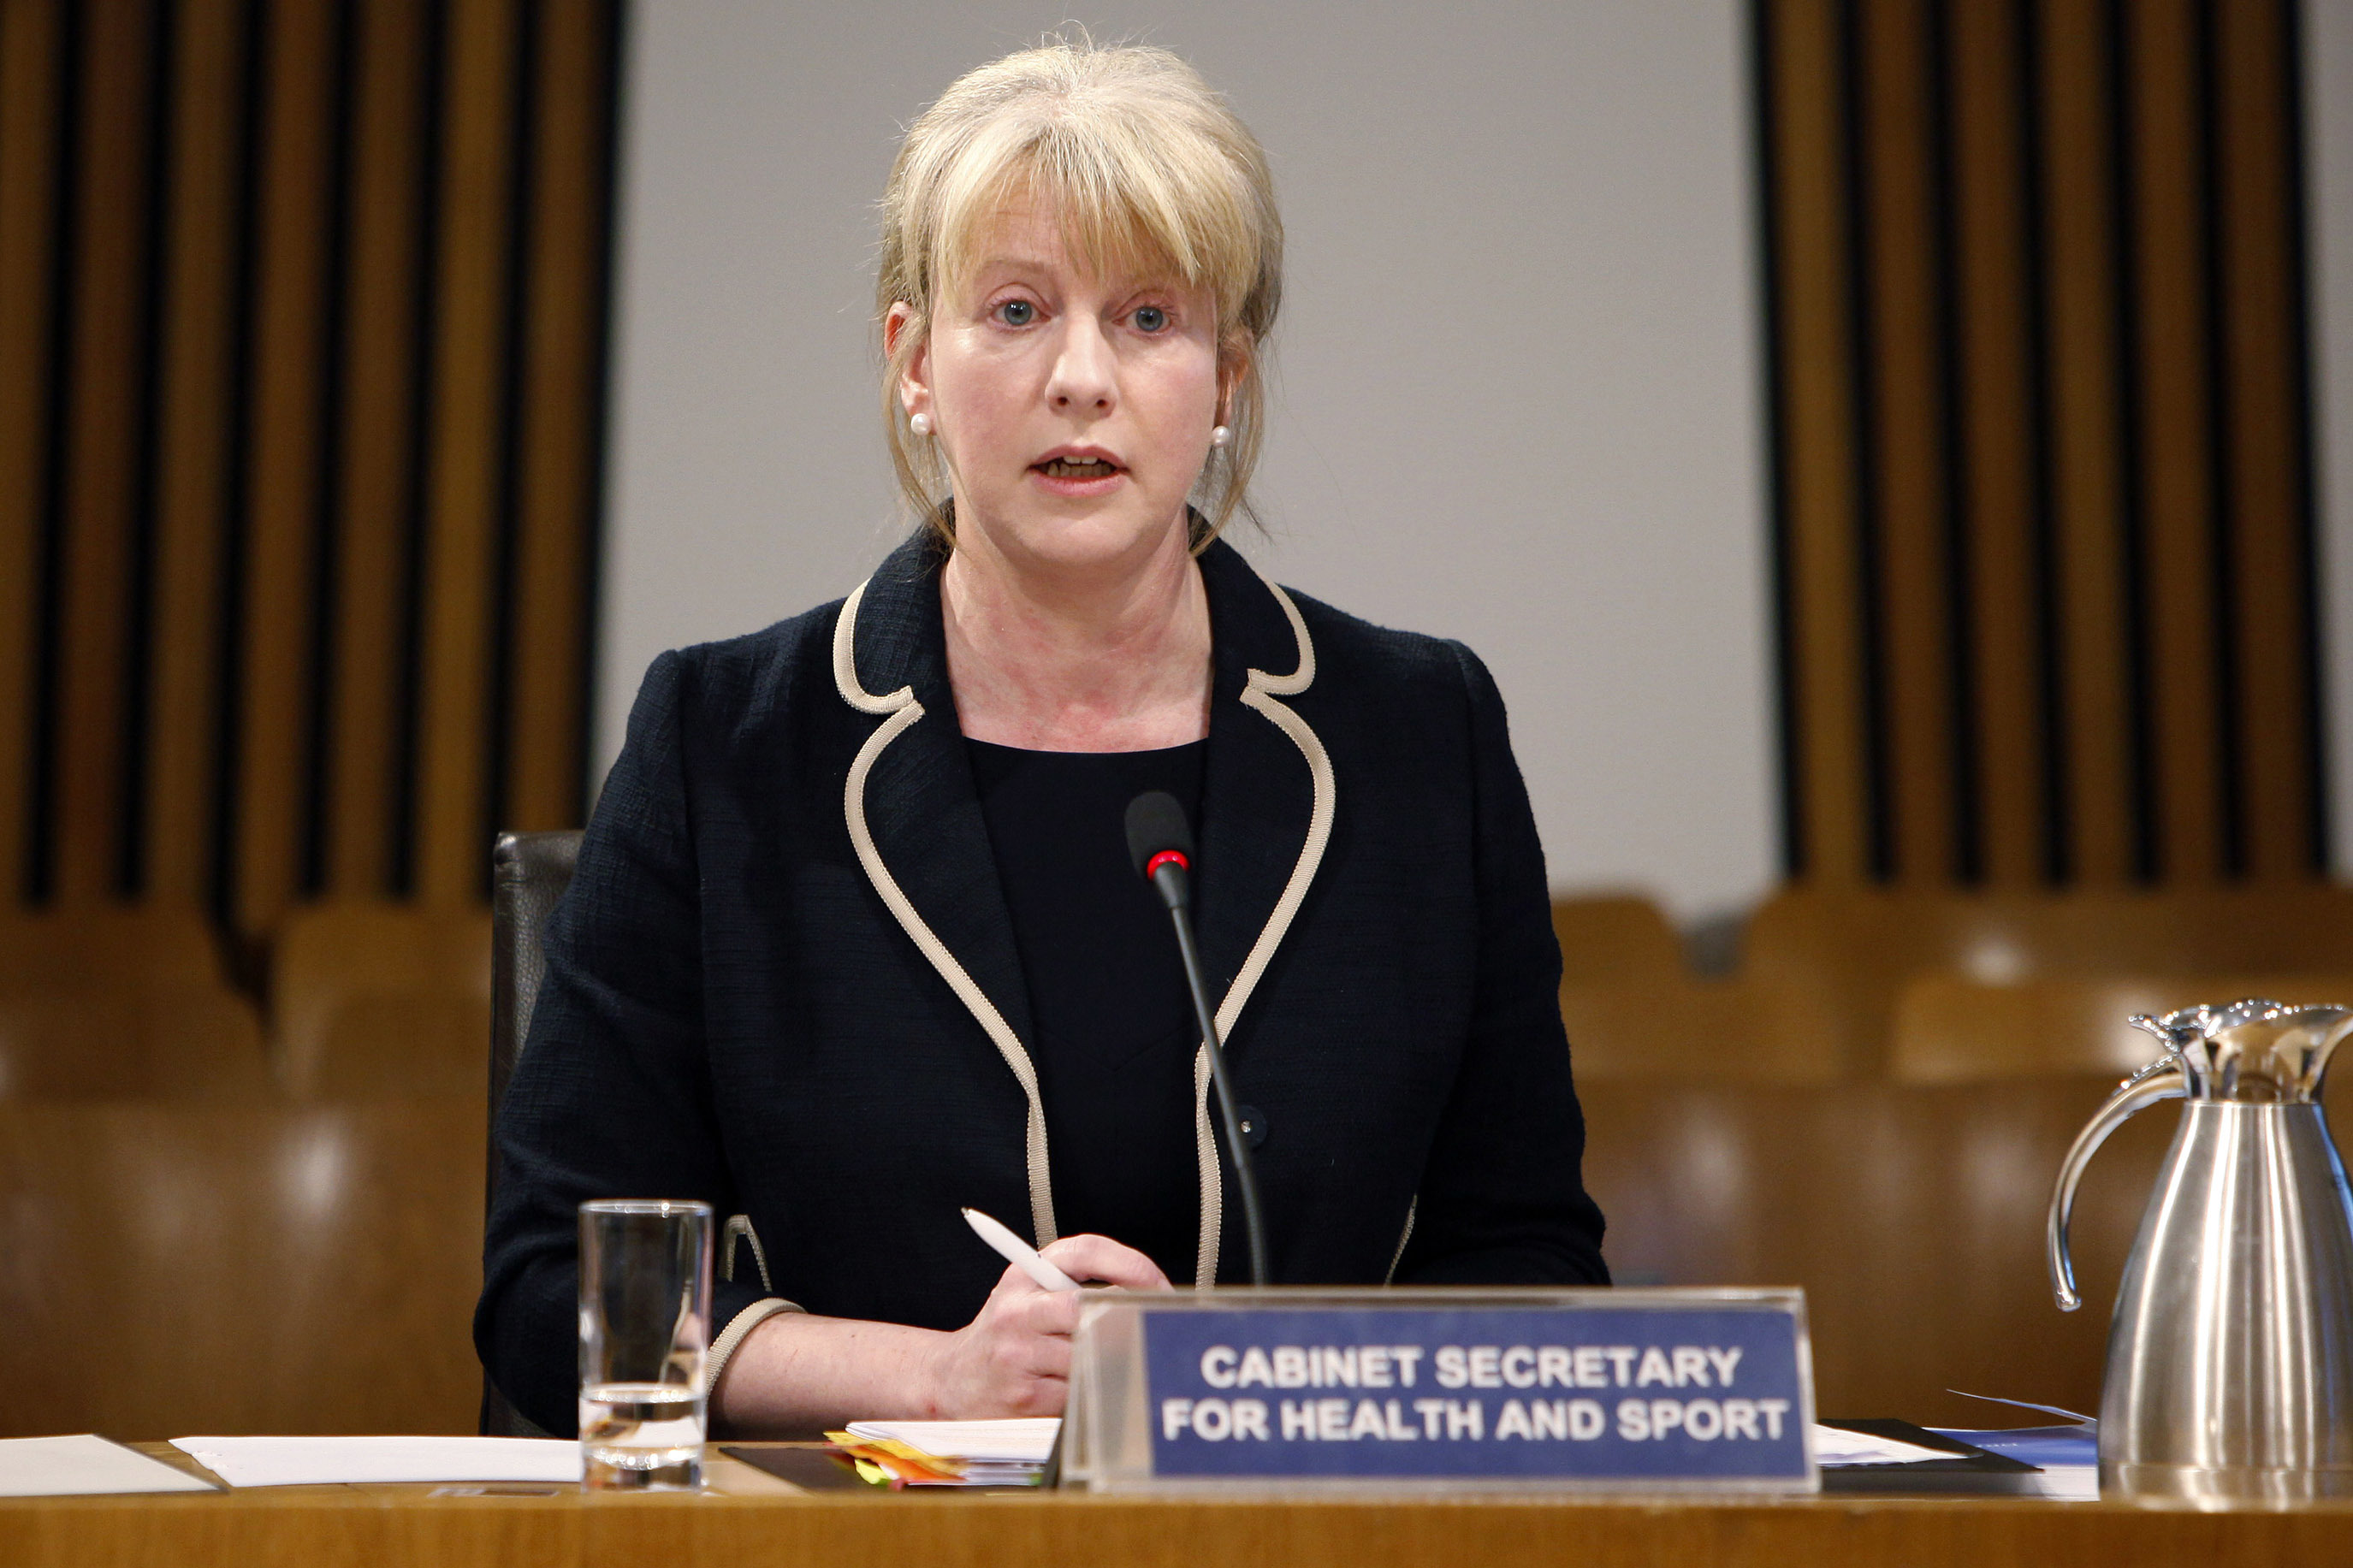 Shona Robison, Cabinet Secretary for Health and Sport (Andrew Cowan/Scottish Parliament)